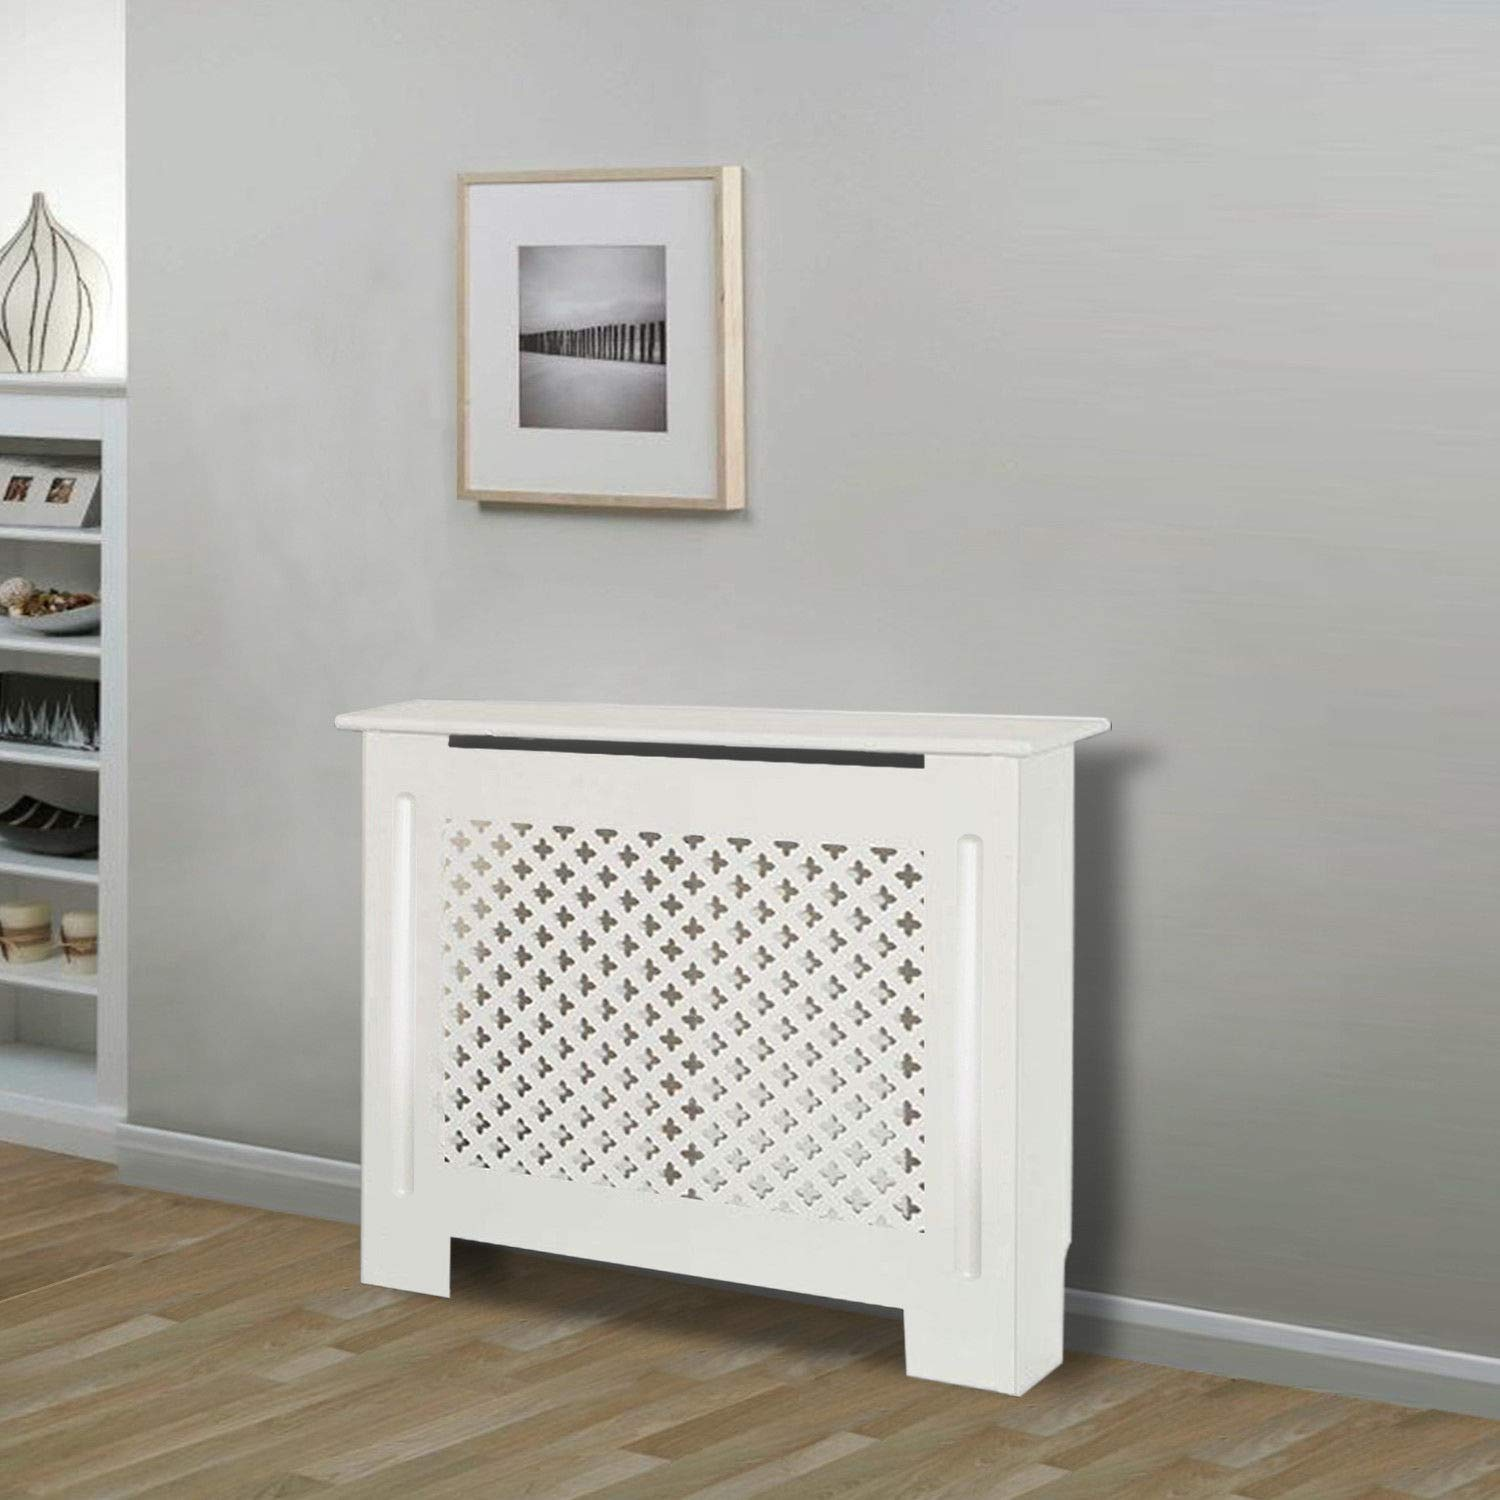 Radiator covers cabinet modern home furniture cross design mdf white painted small amazon co uk kitchen home